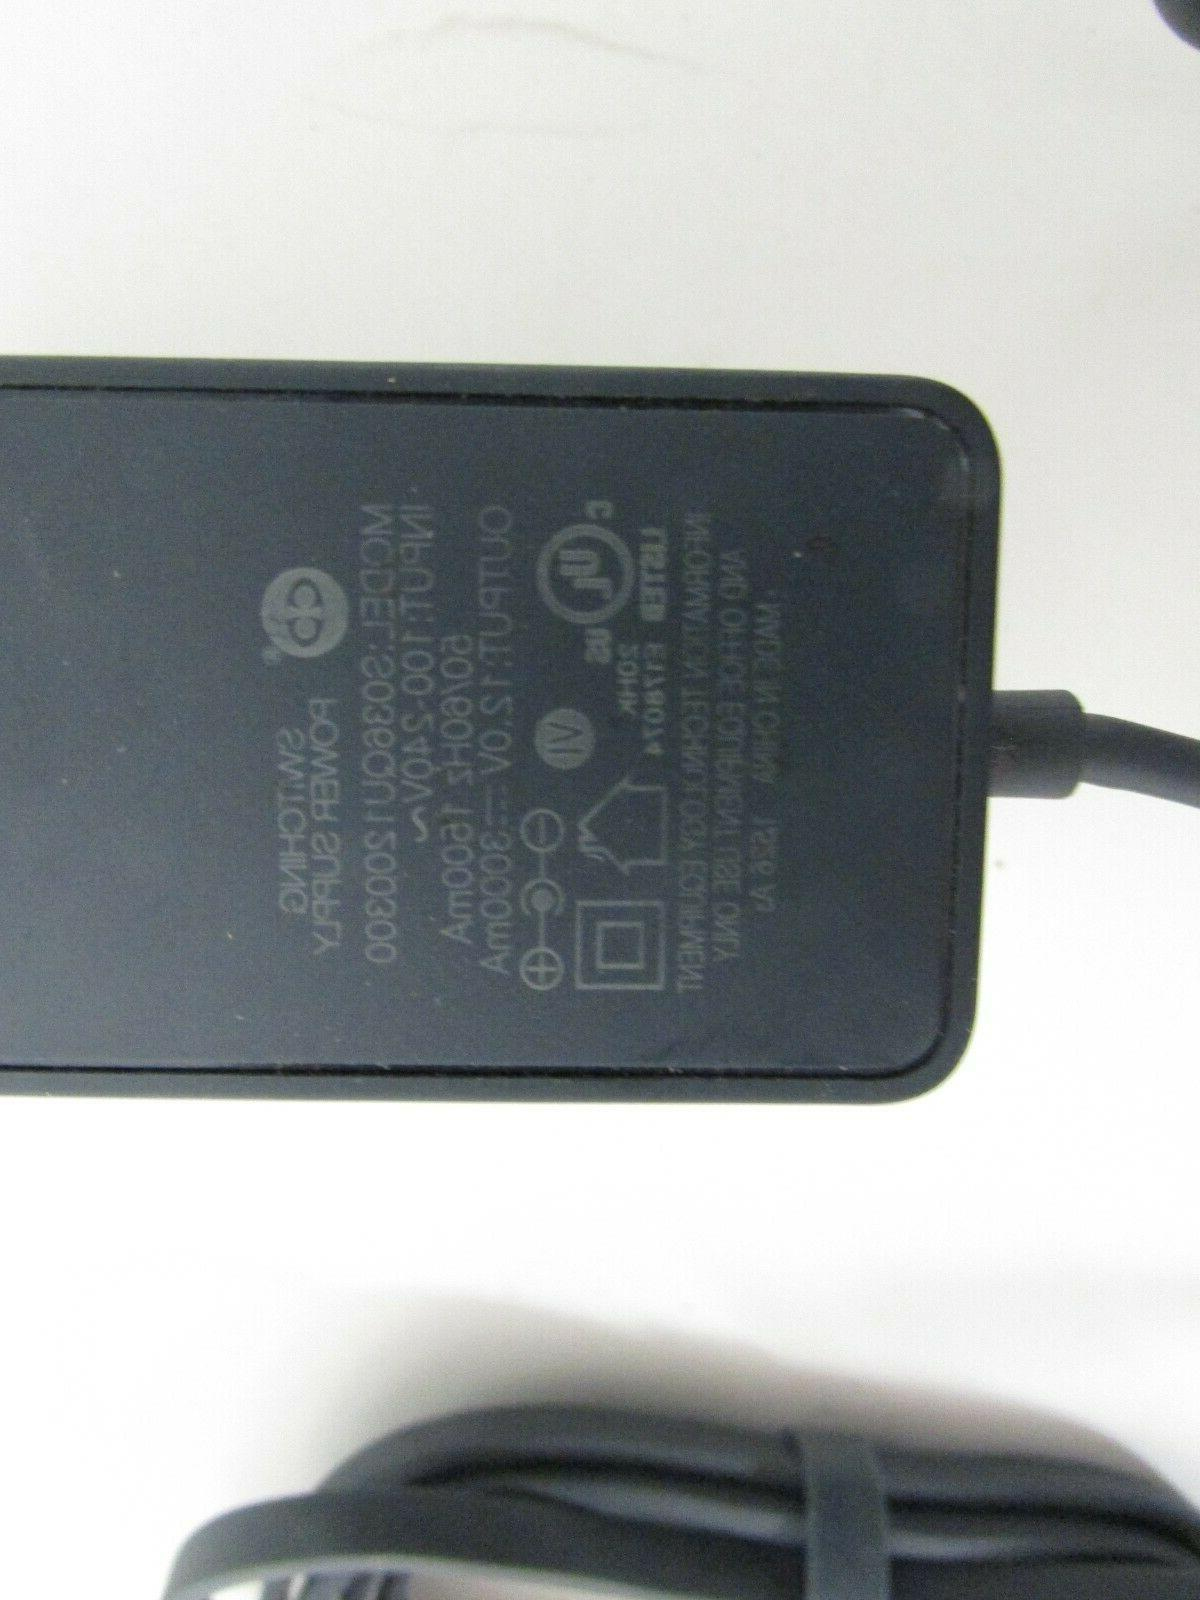 TP-Link OnHub 12V Power Supply S036QU/1200300 Extra Cable